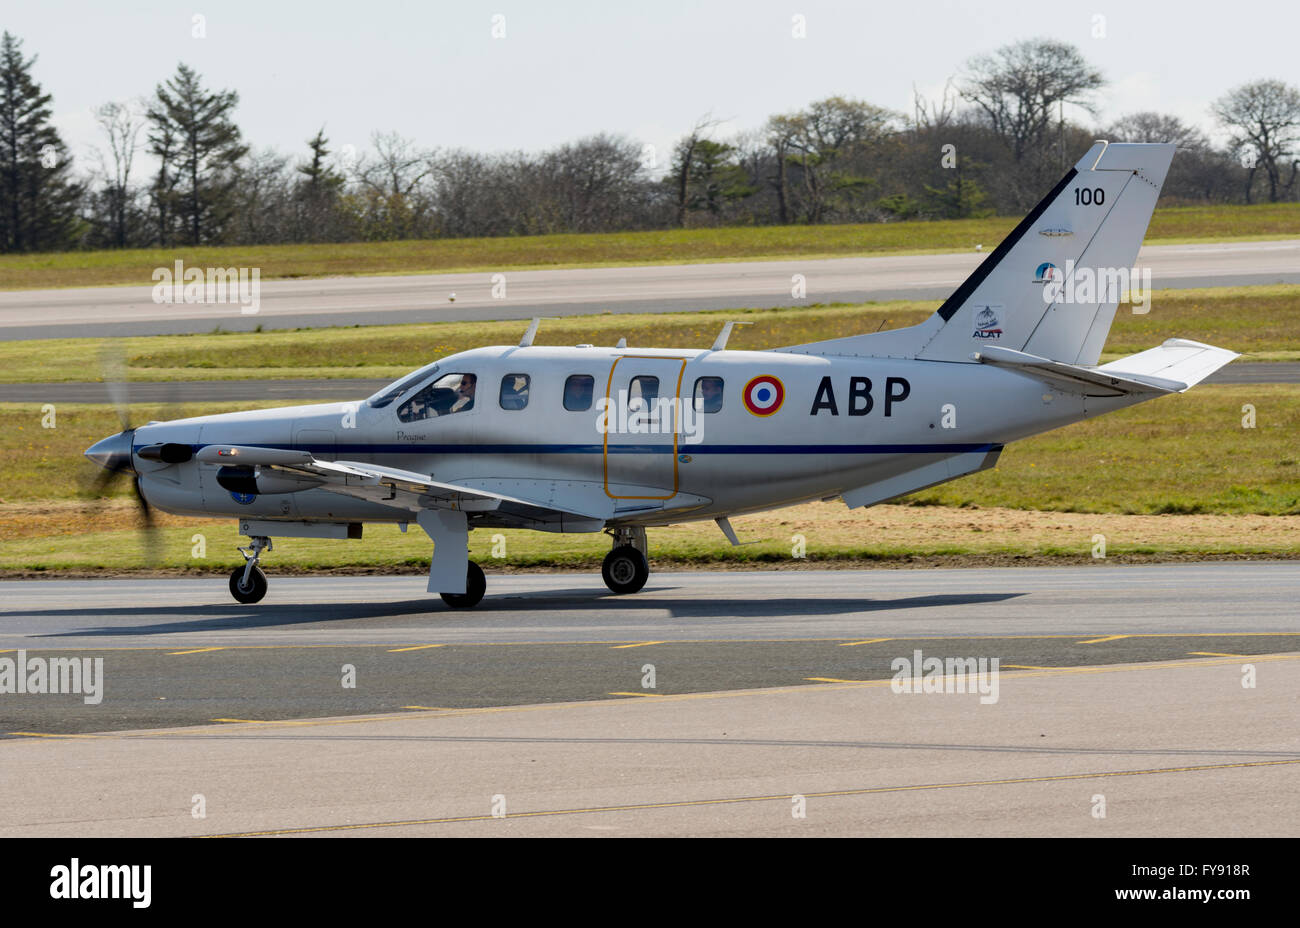 Newquay, Cornwall, UK. 21st Apr, 2016. Socata TBM 700 100/ABP French Air Force in Newquay/RAF St Mawgan as part - Stock Image